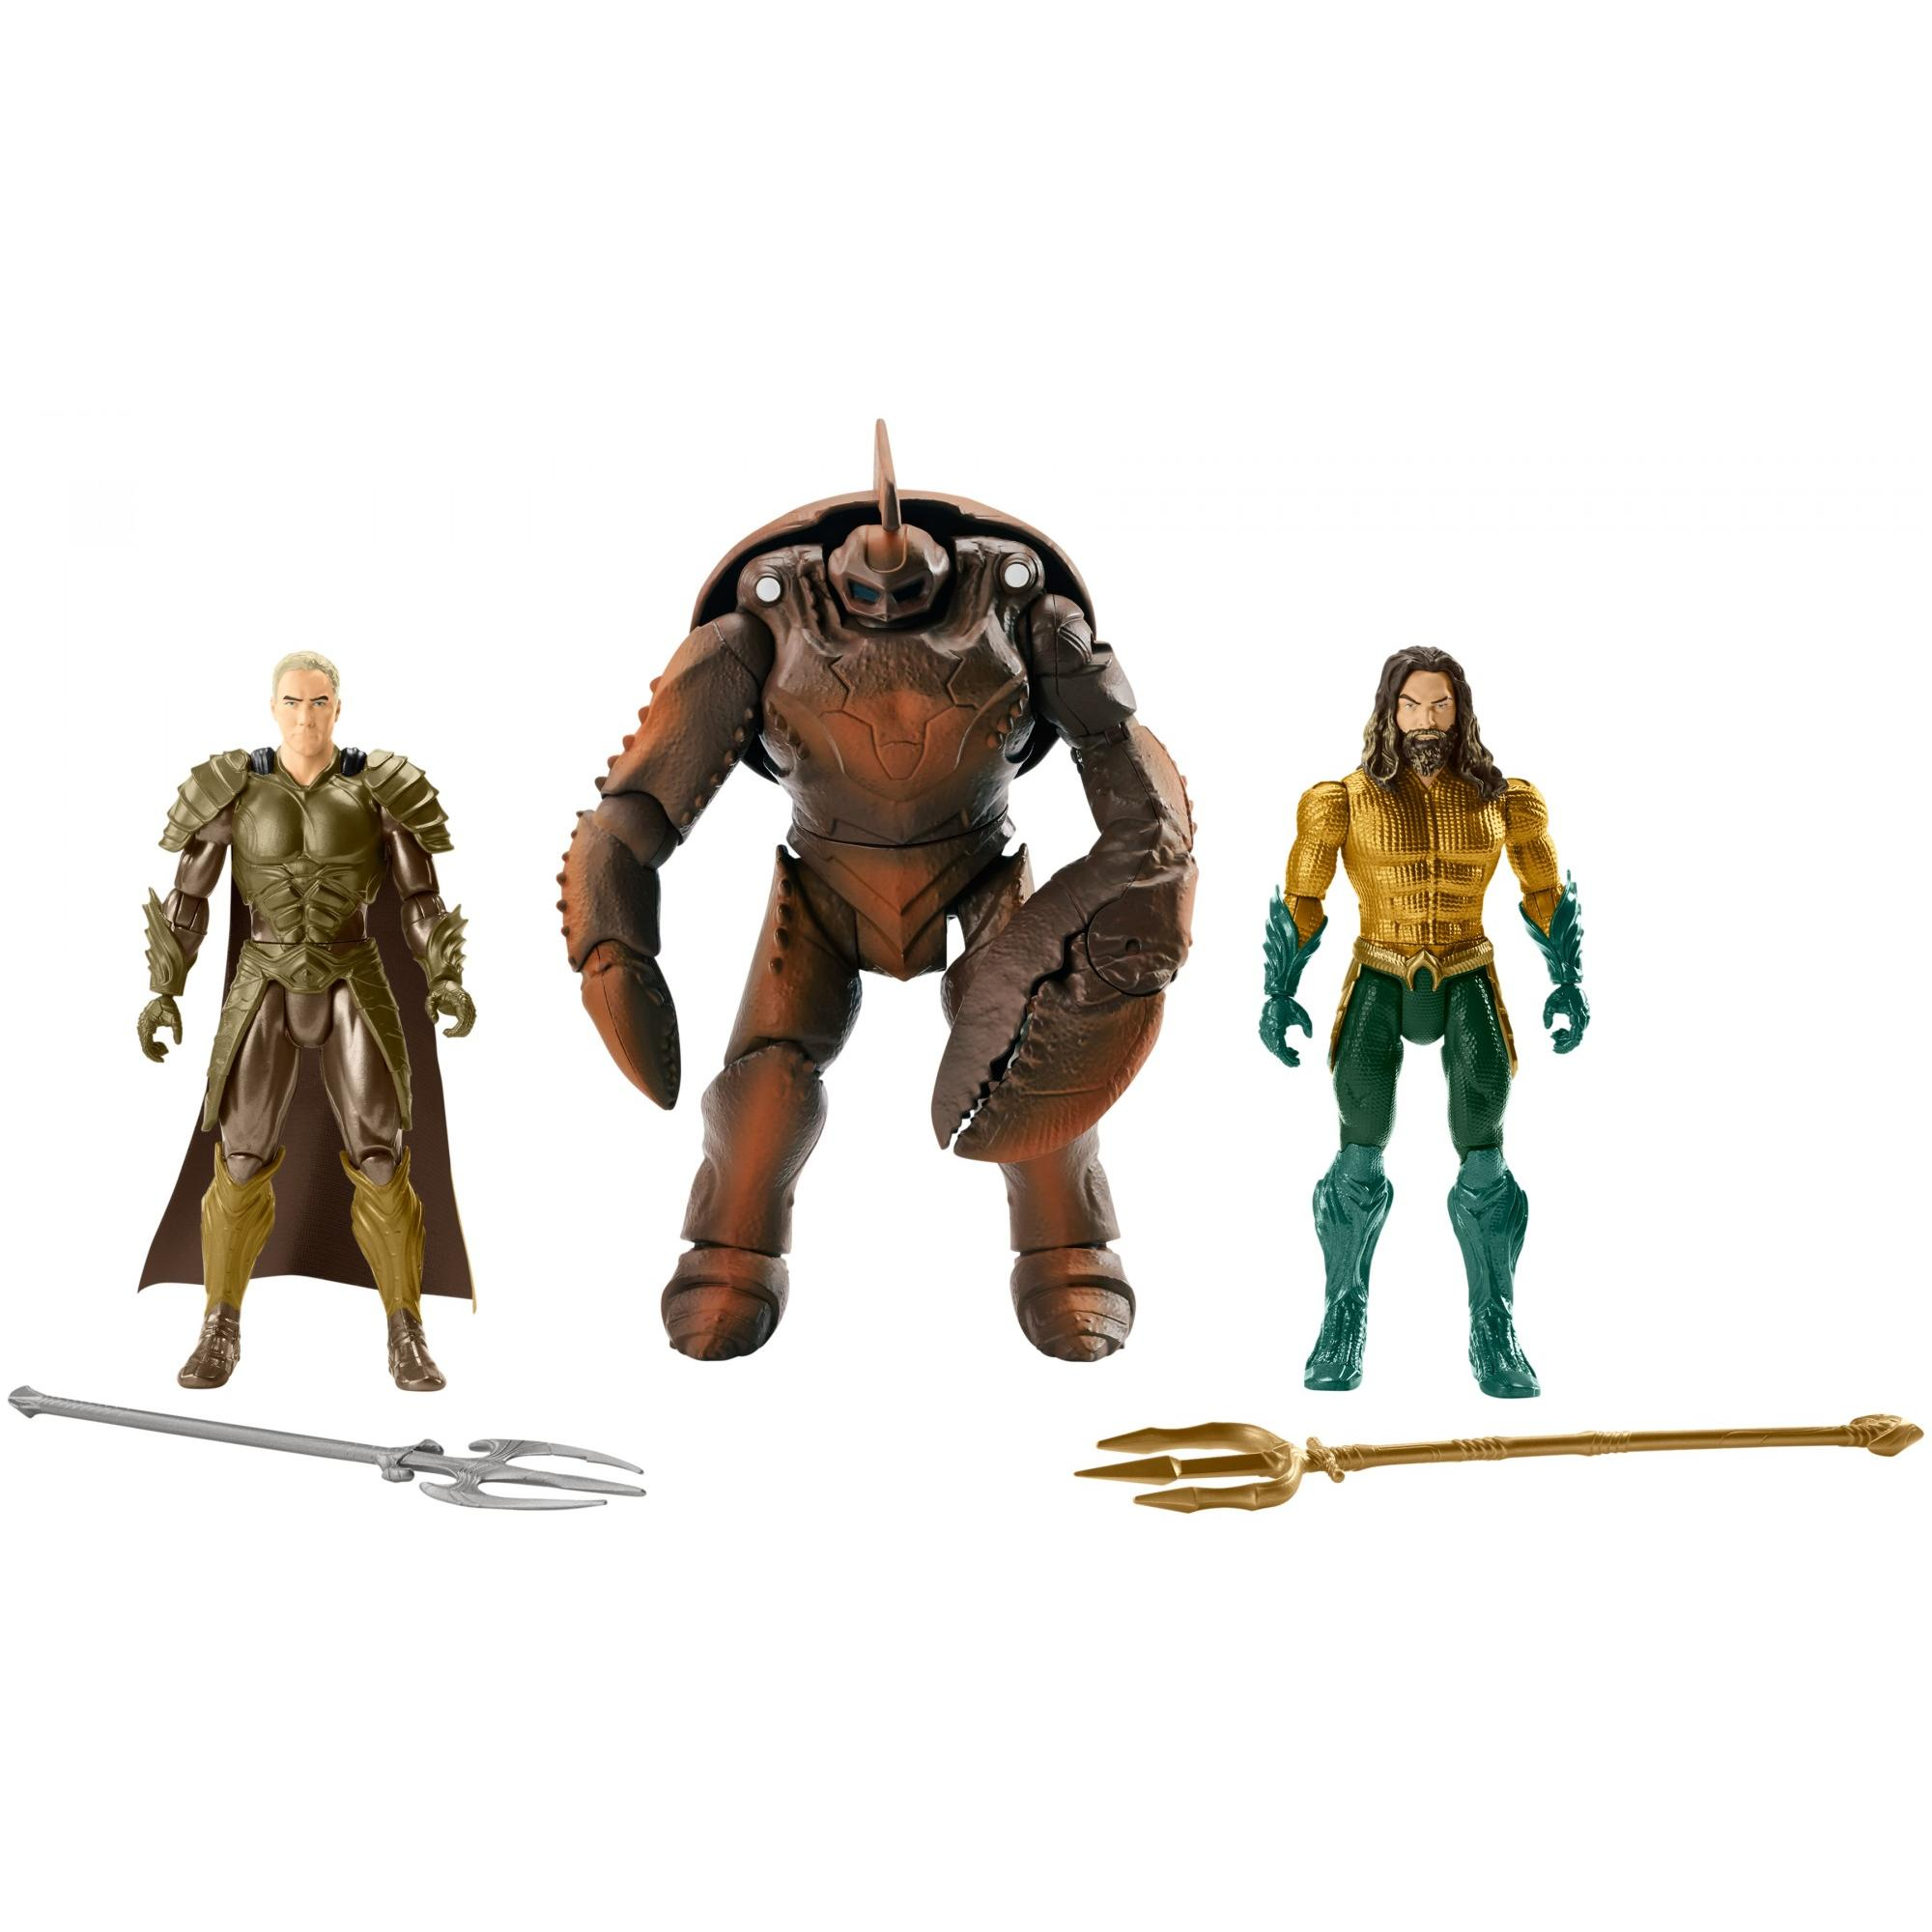 Aquaman Movie Action Figures 3-Pack with Aquaman, Orm, & Brine King